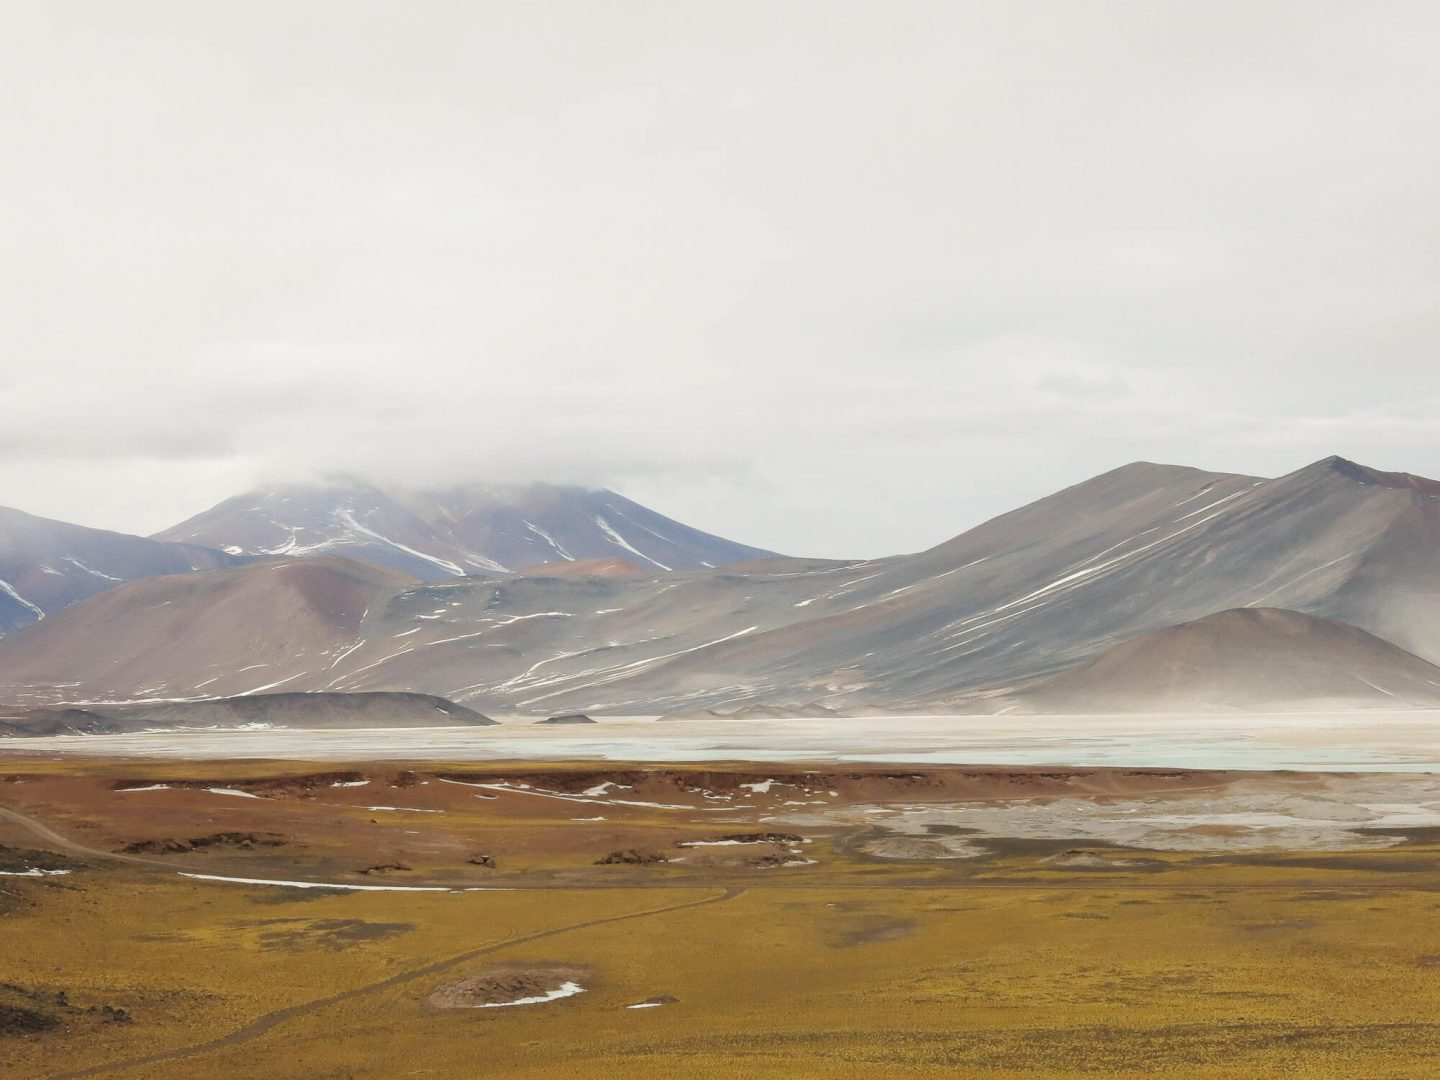 The stunning landscapes of the Atacama Desert in Chile. A review of the different Atacama Desert tours.